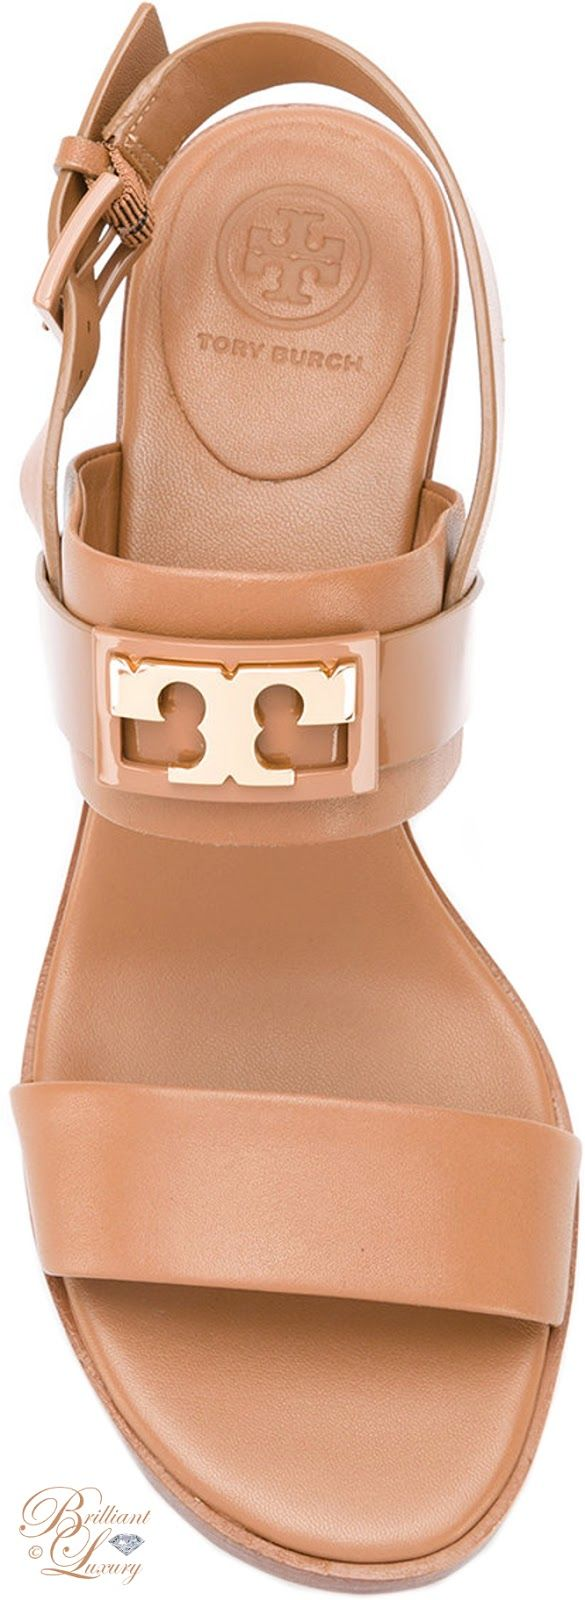 Brilliant Luxury by Emmy DE ♦ Tory Burch Chunky Heel Sandals